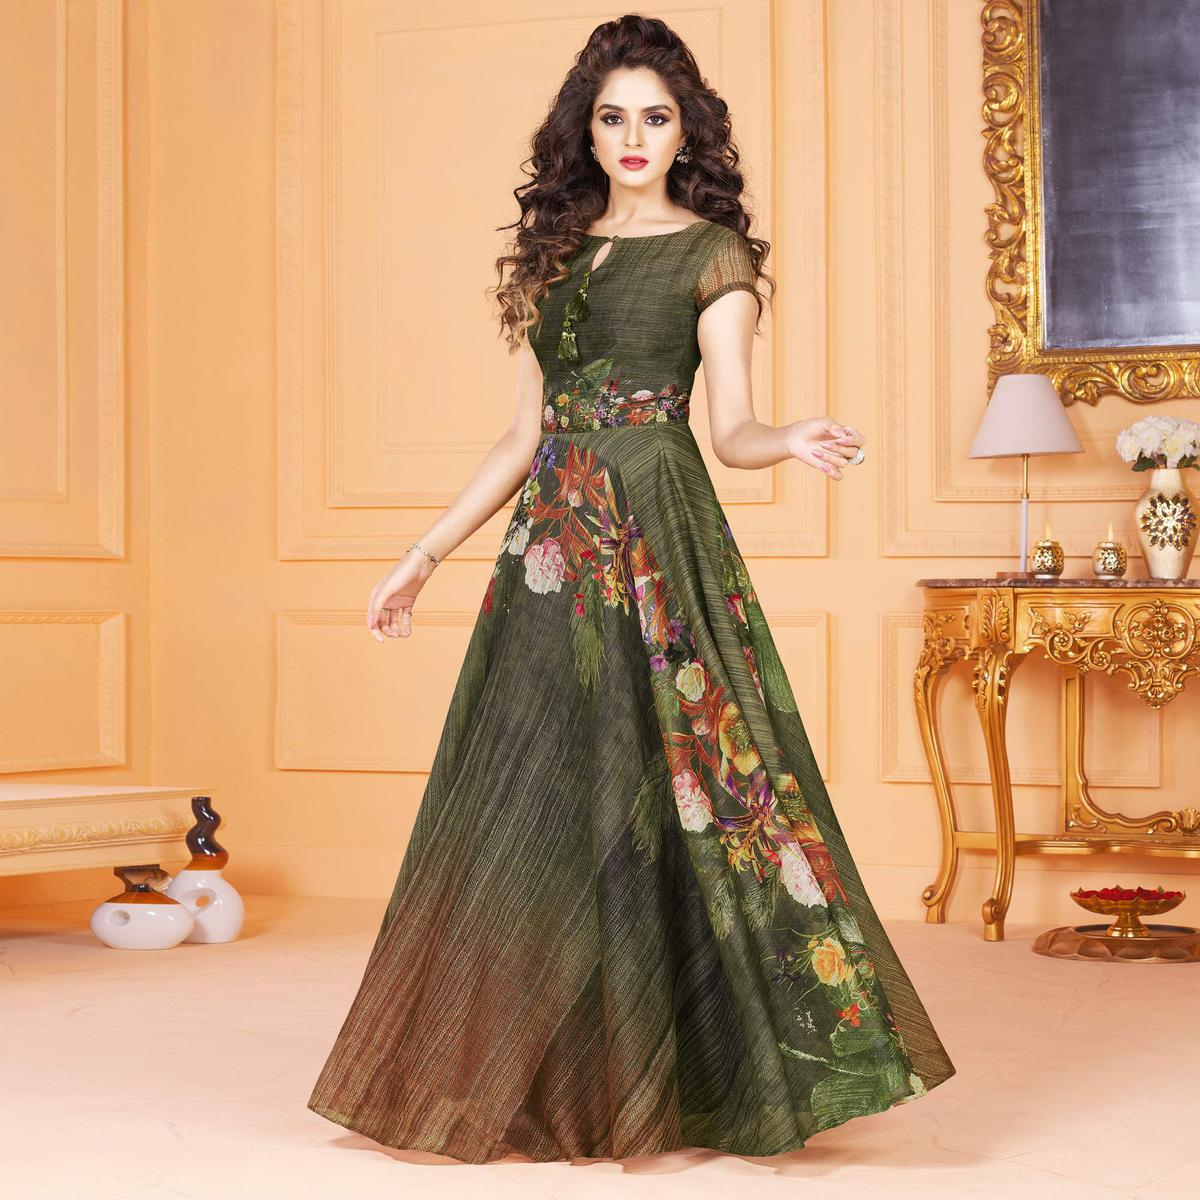 59a8e545f1 Buy Perfect Green Colored Partywear Digital Printed Tussar Art Silk Gown for  womens online India, Best Prices, Reviews - Peachmode